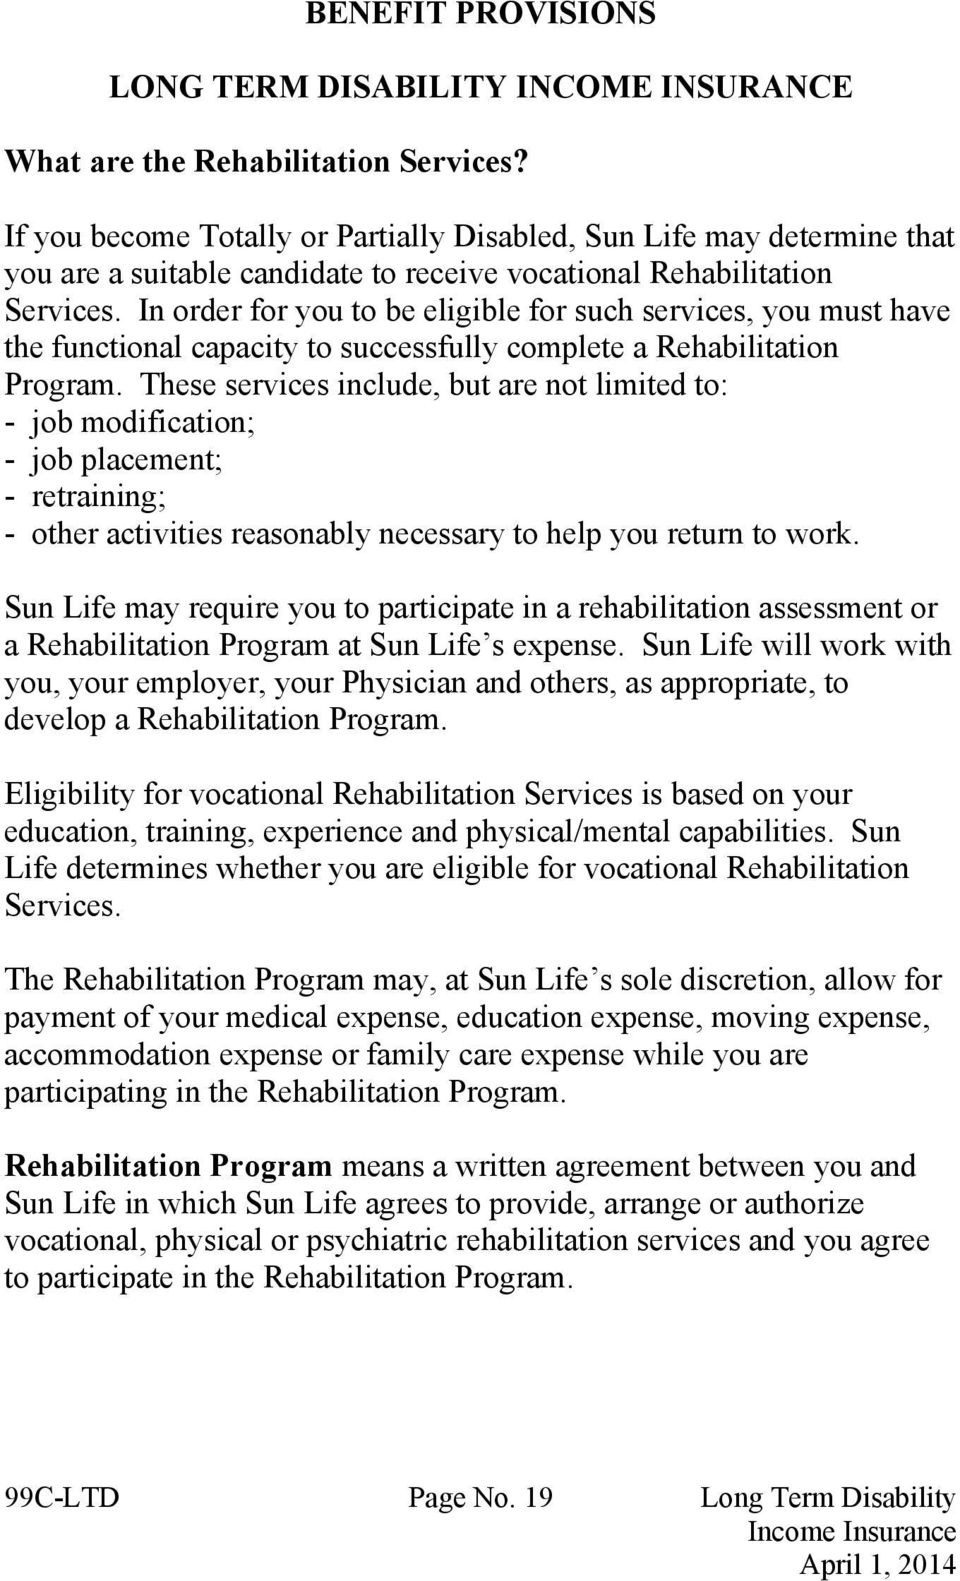 In order for you to be eligible for such services, you must have the functional capacity to successfully complete a Rehabilitation Program.